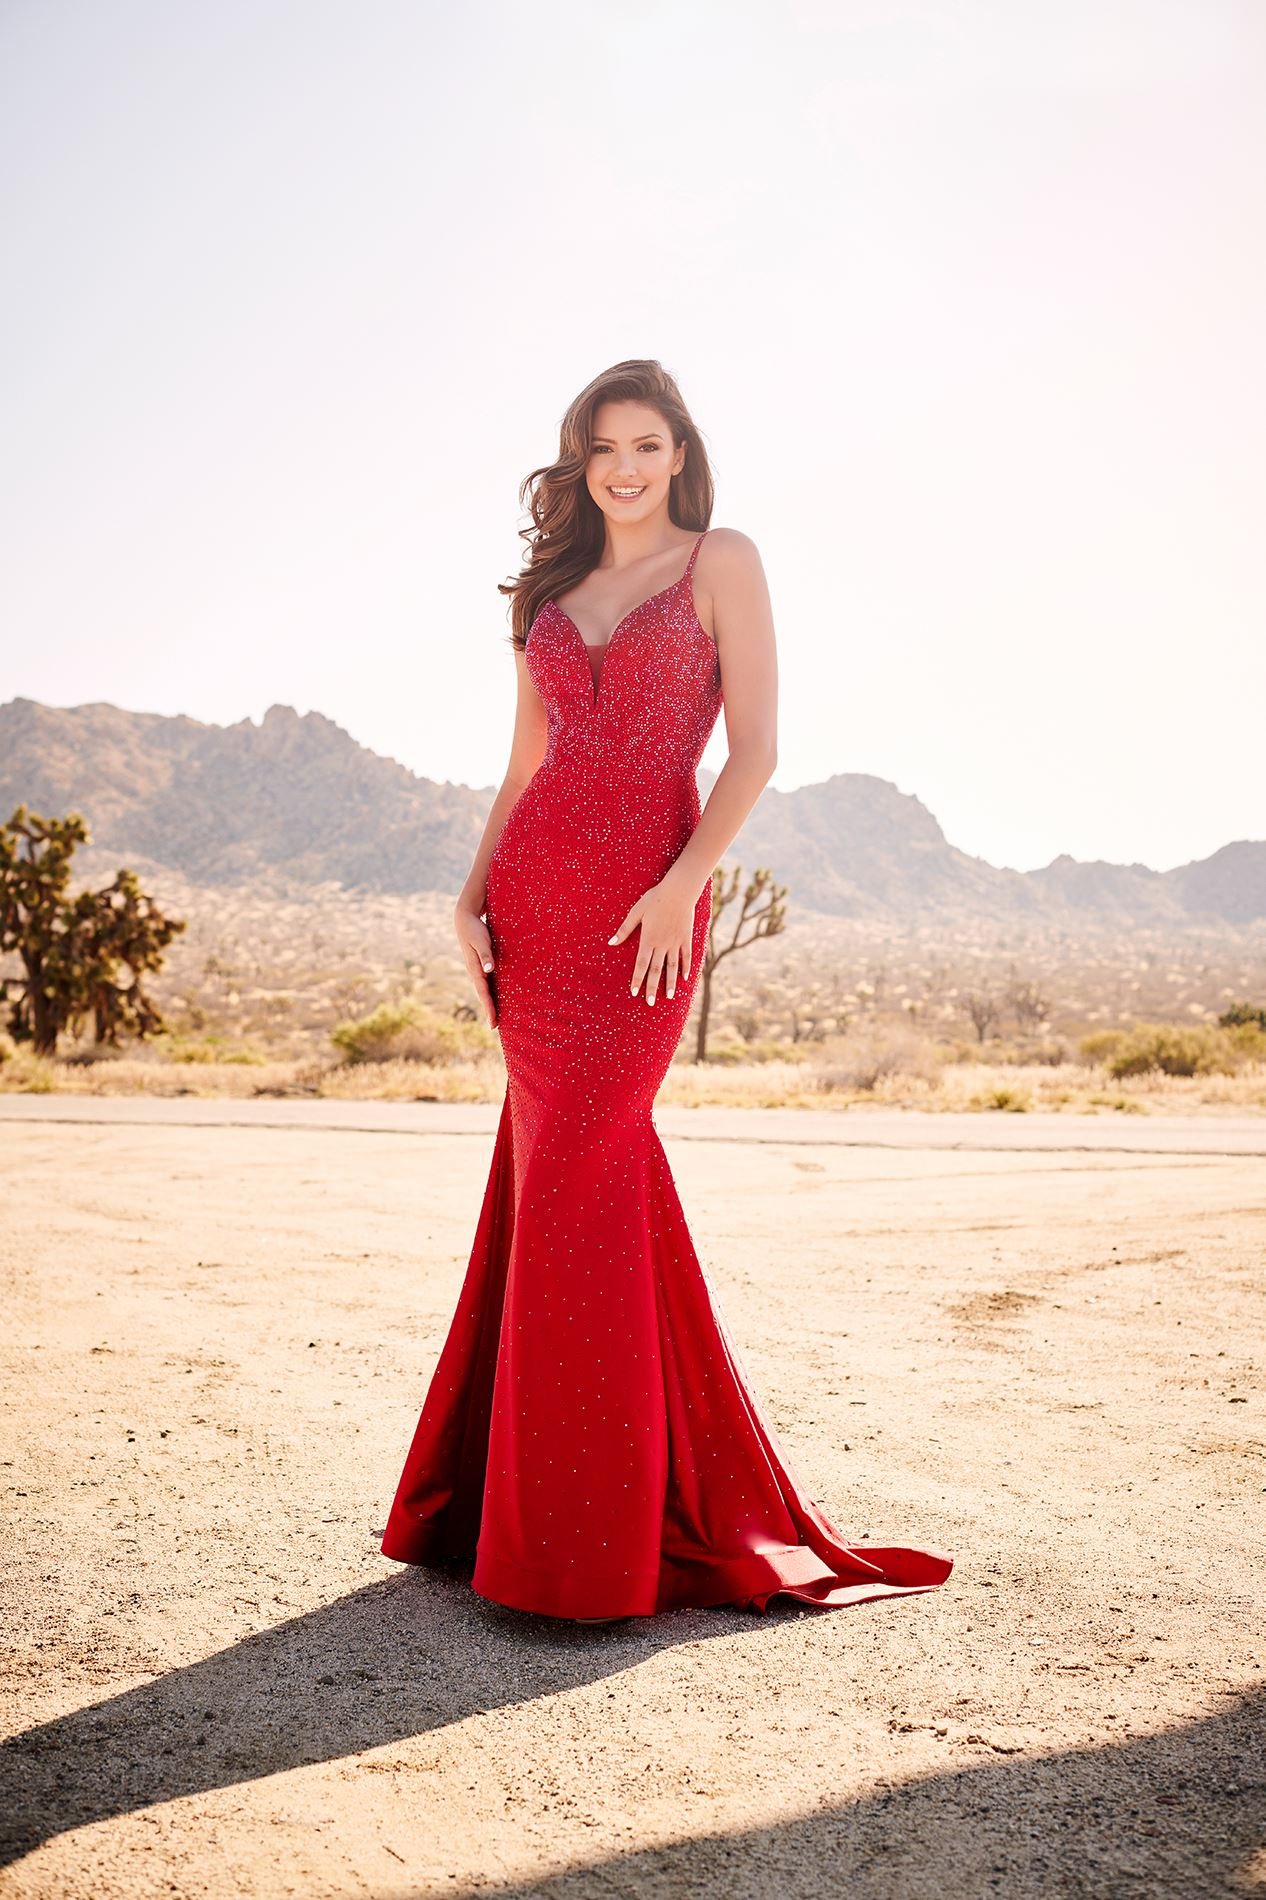 Brunette model in long red prom dress in desert